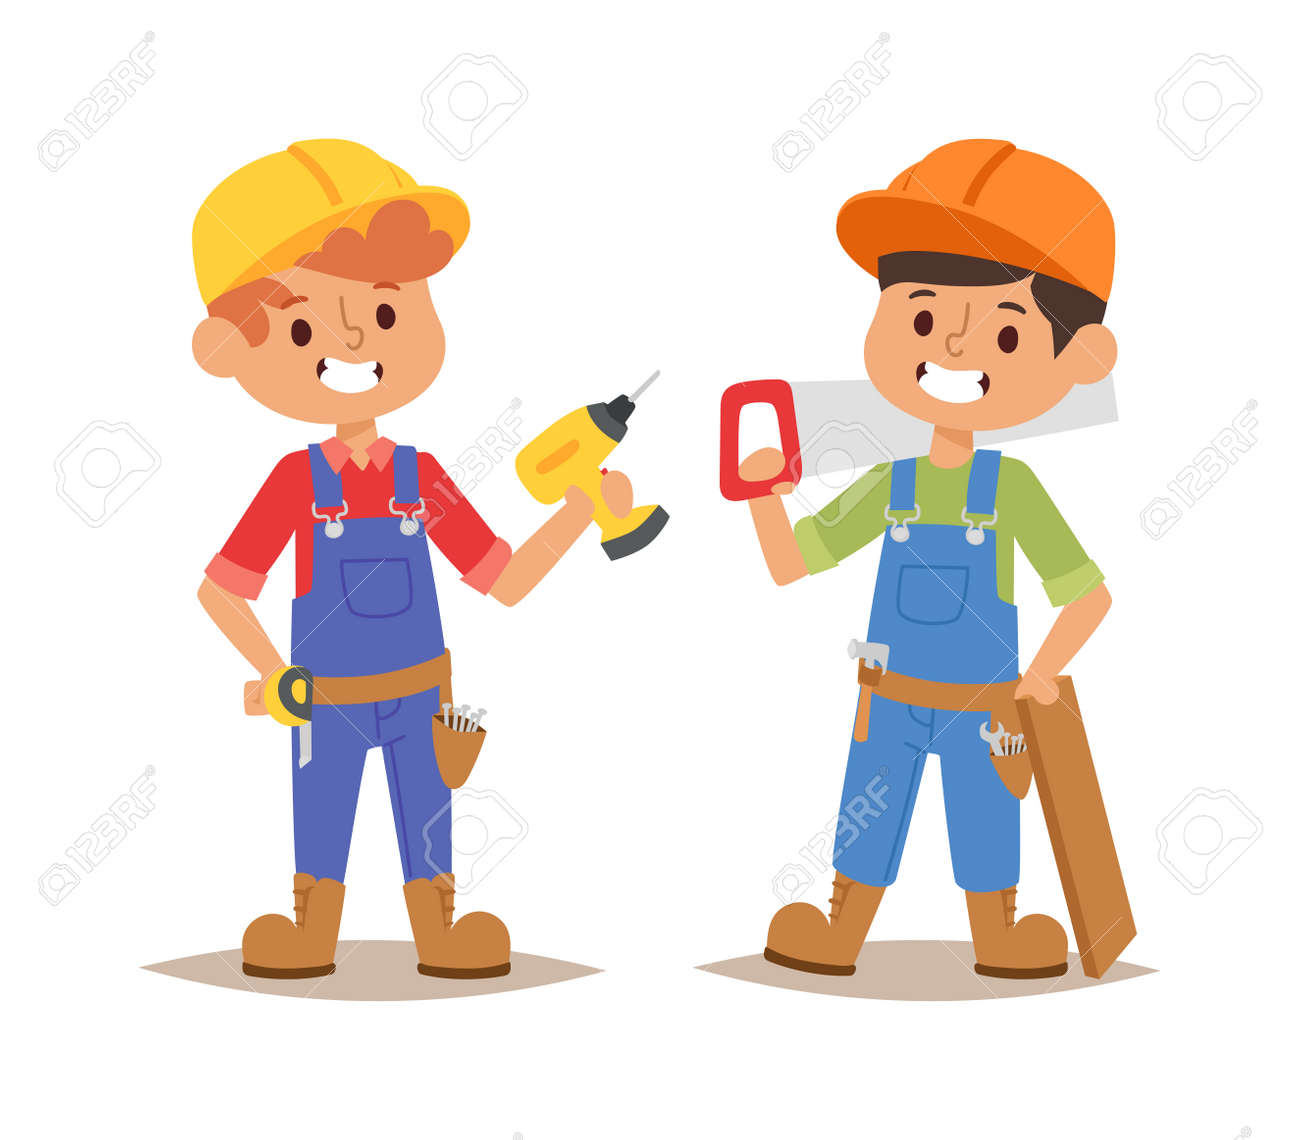 Builders Kids Carpenter Builder With Tools Vector Character Royalty Free Cliparts Vectors And Stock Illustration Image 60453367